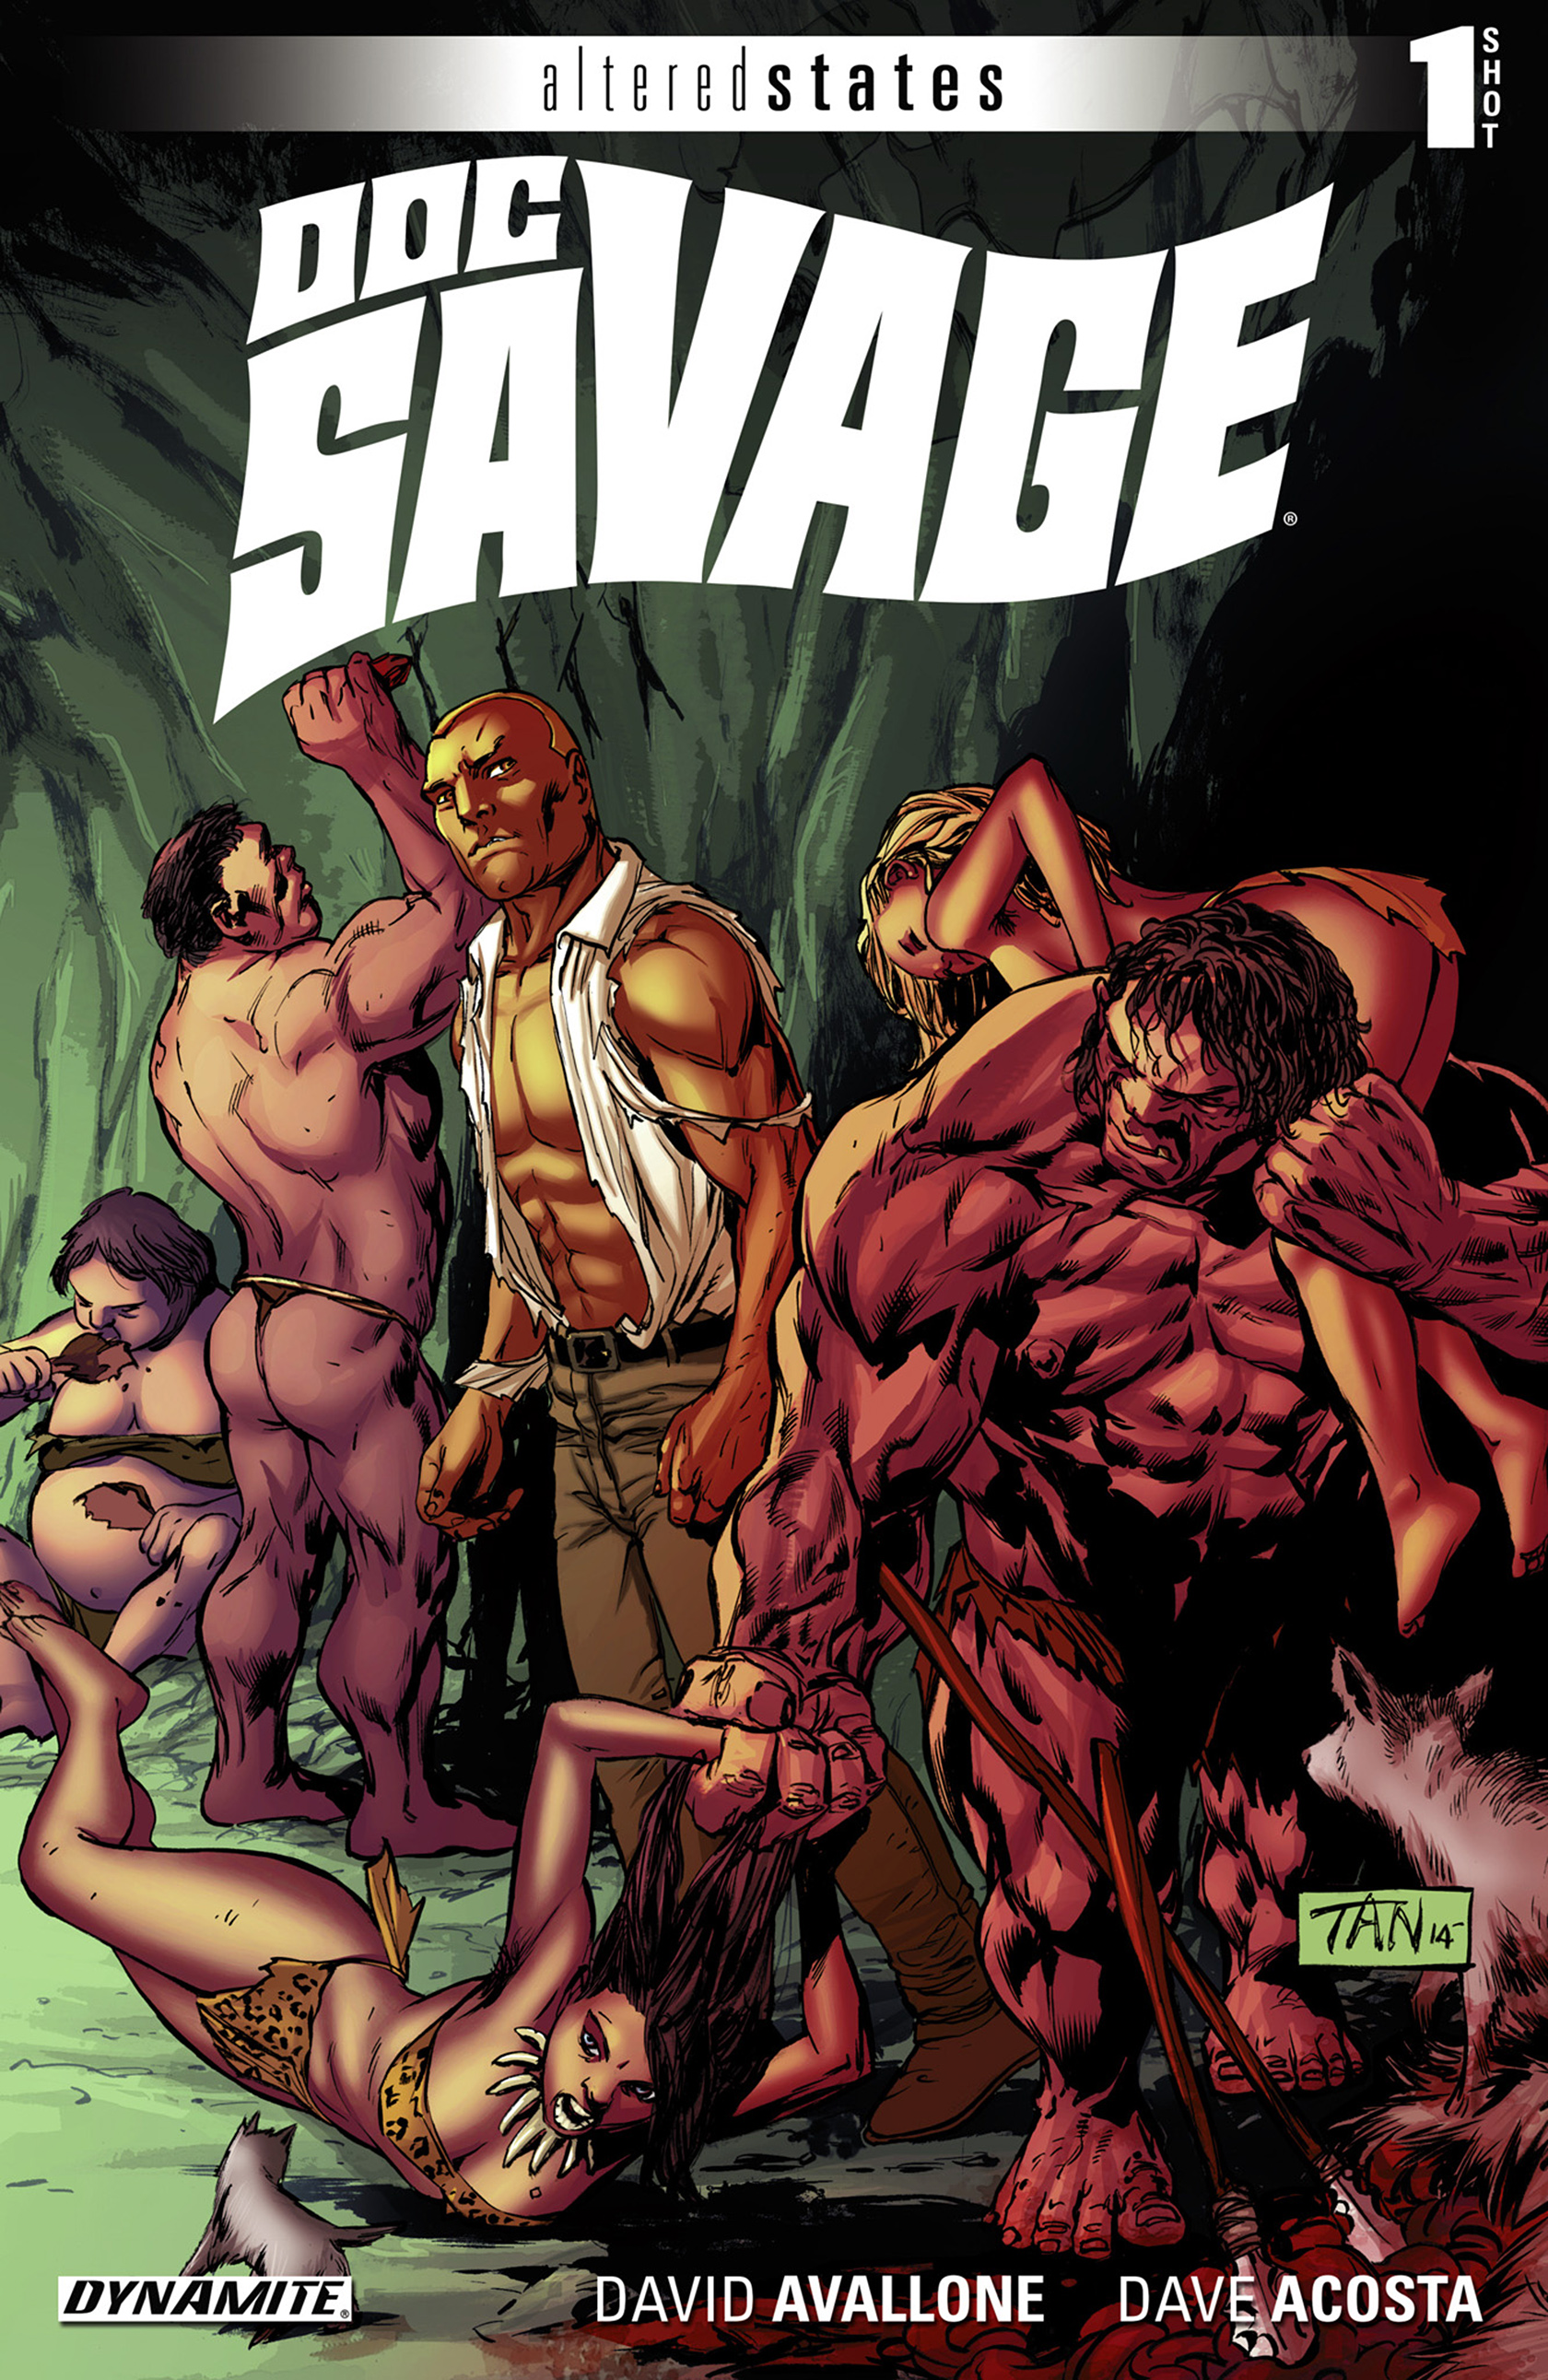 Altered States: Doc Savage Full Page 1